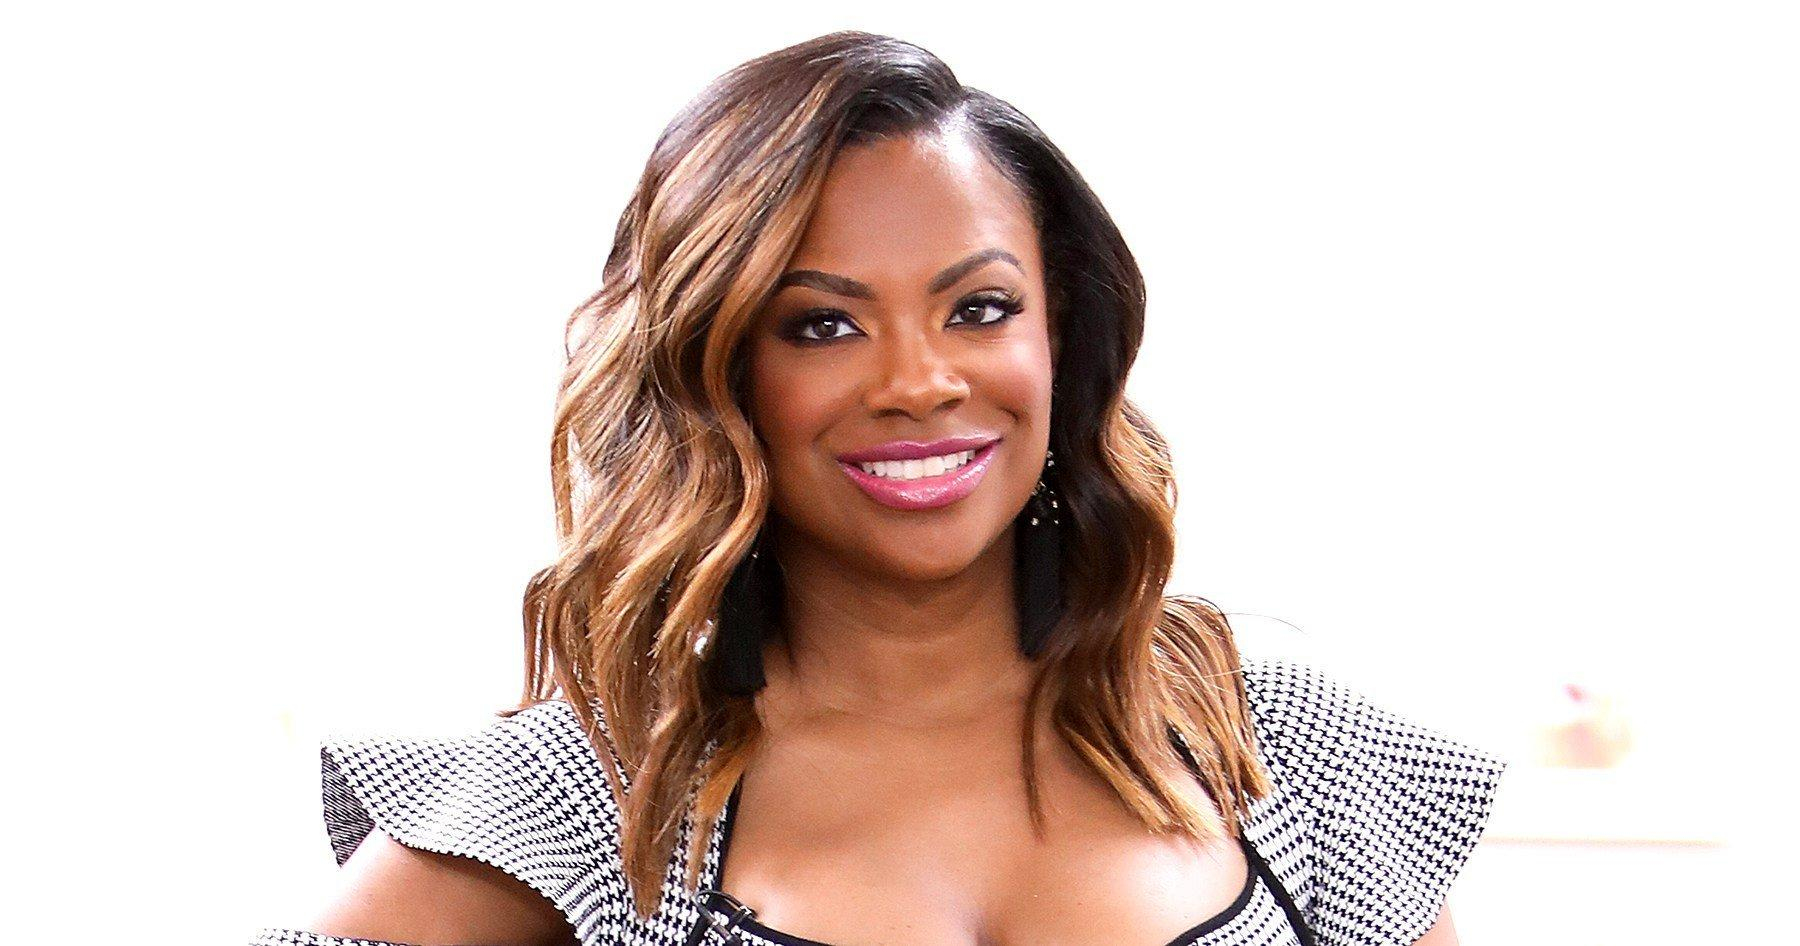 Kandi Burruss Kicks Off The BKConvention 2019 - Check Out Pics And Videos From The Event